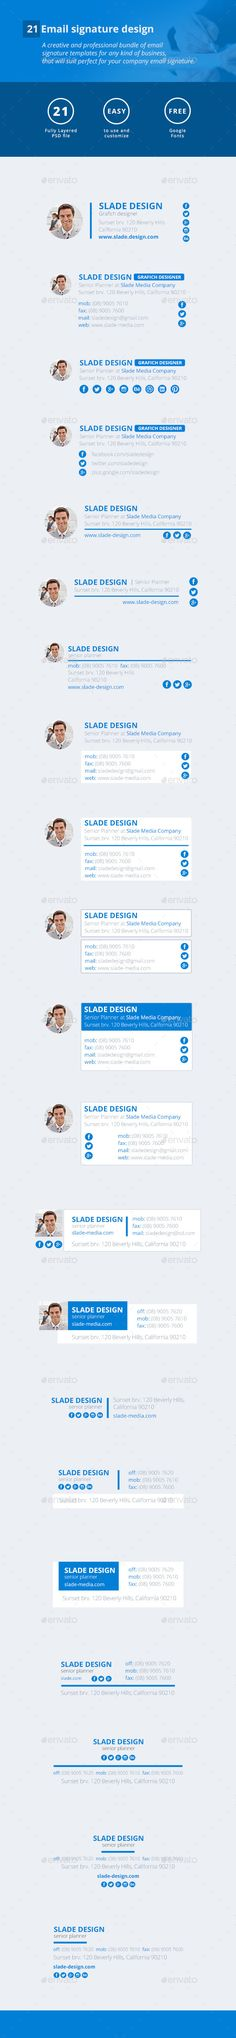 21 Email Signature Design